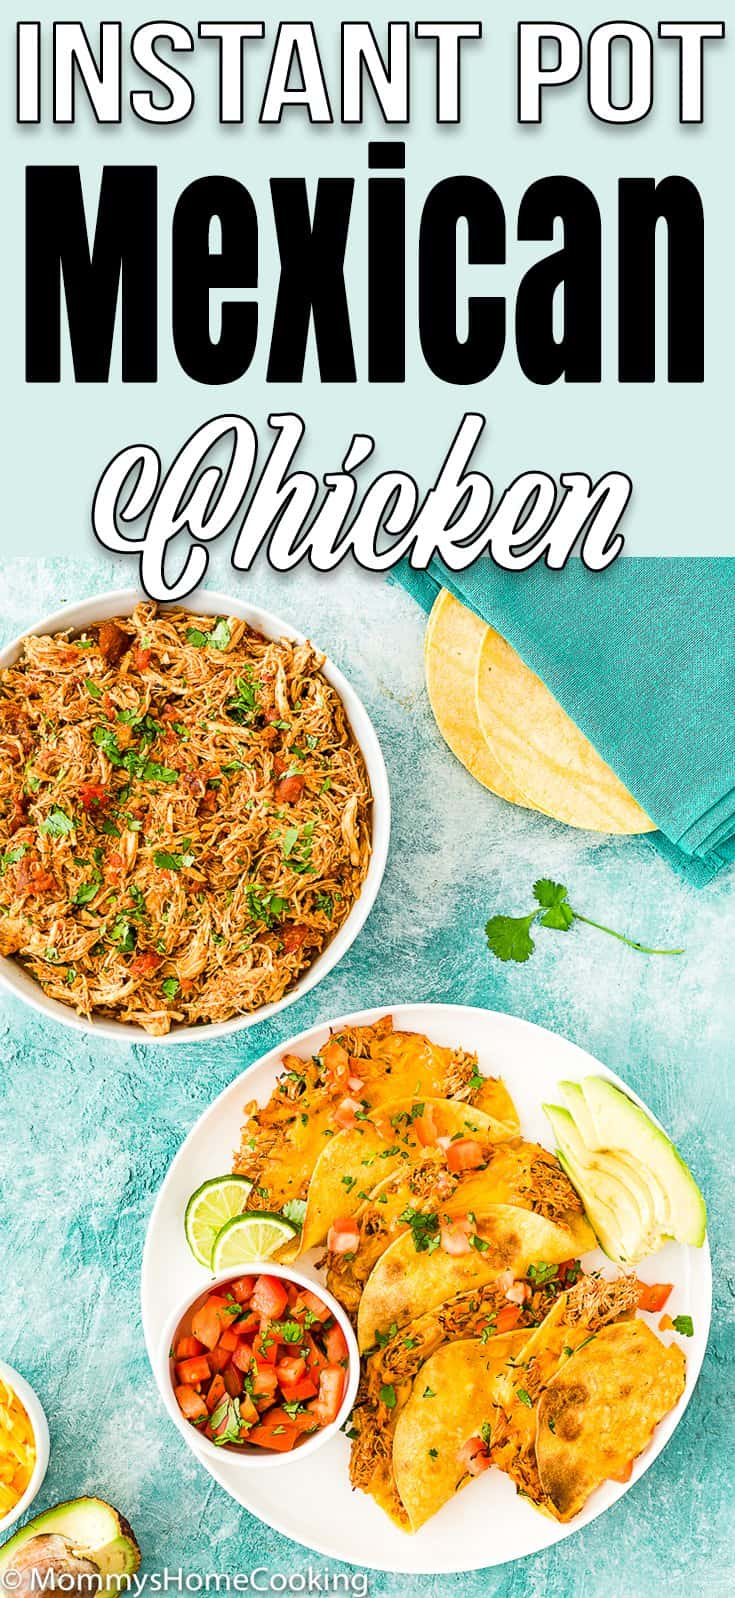 Easy Instant Pot Mexican Shredded Chicken and tacos with descriptive text